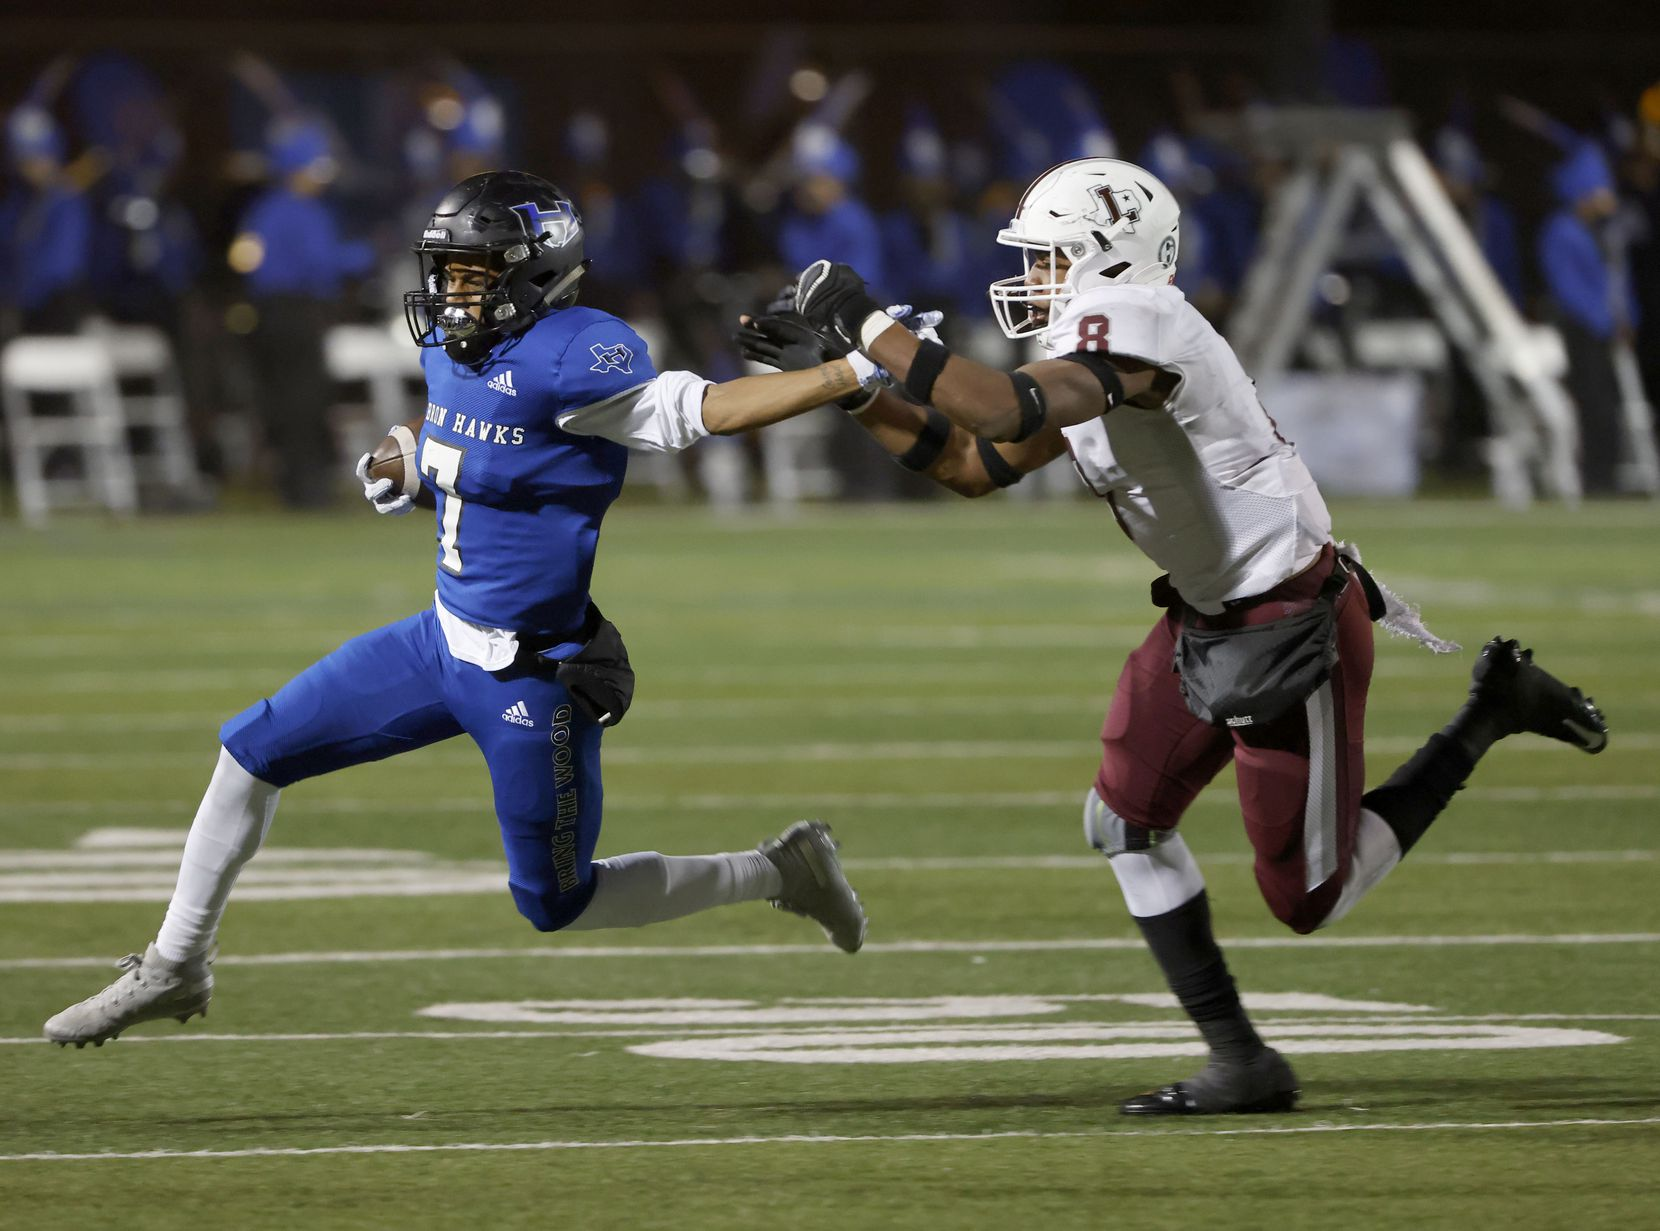 Hebron Hawks' Trenton Bronaough tries to get past Lewisville's Davis Adegbenro (8) during their District 6-6A high school football game on Dec. 4, 2020. (Michael Ainsworth/Special Contributor)